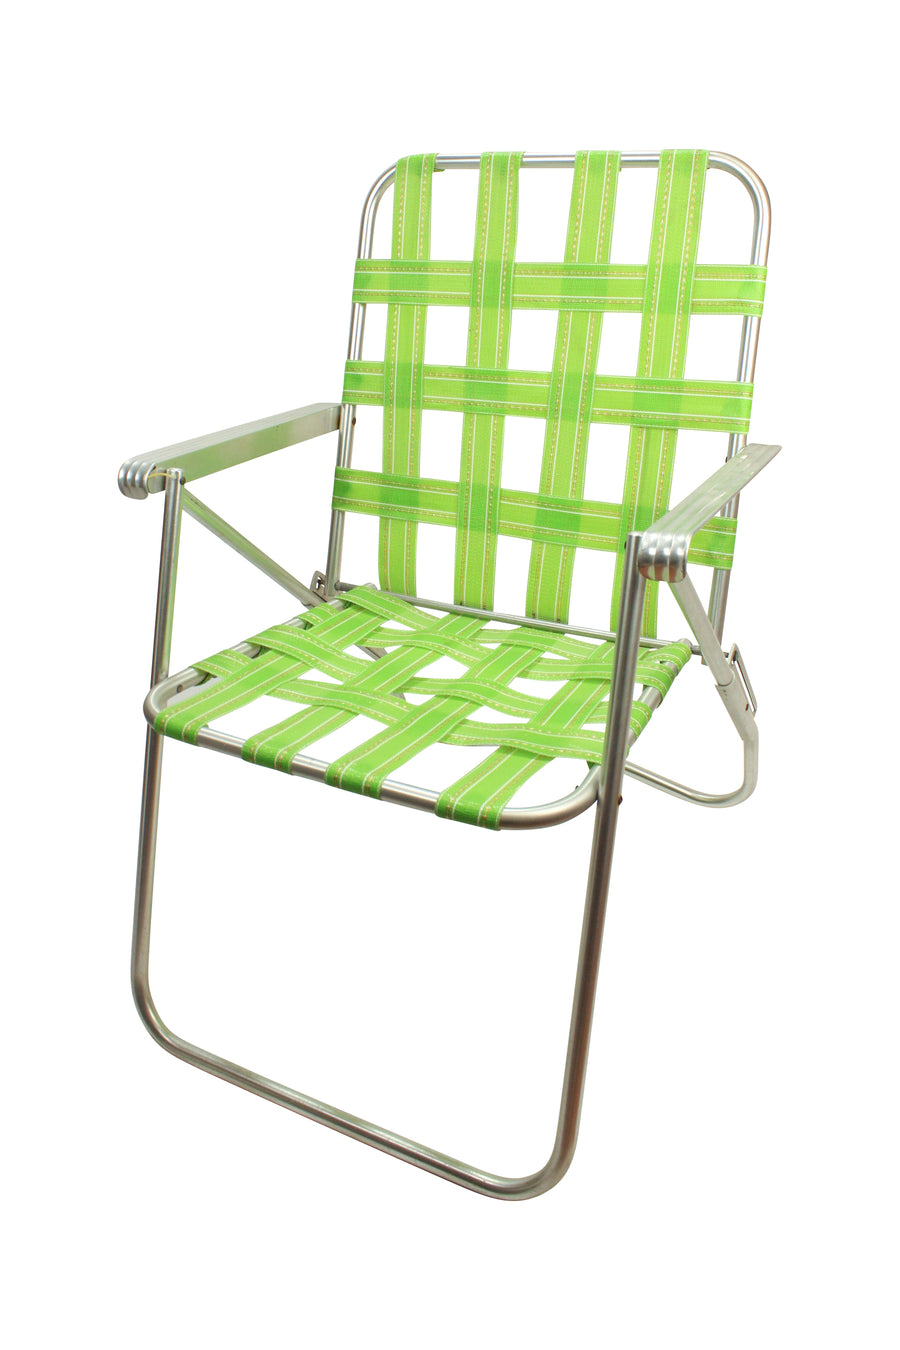 Webbed Mesh Lawn Chairs